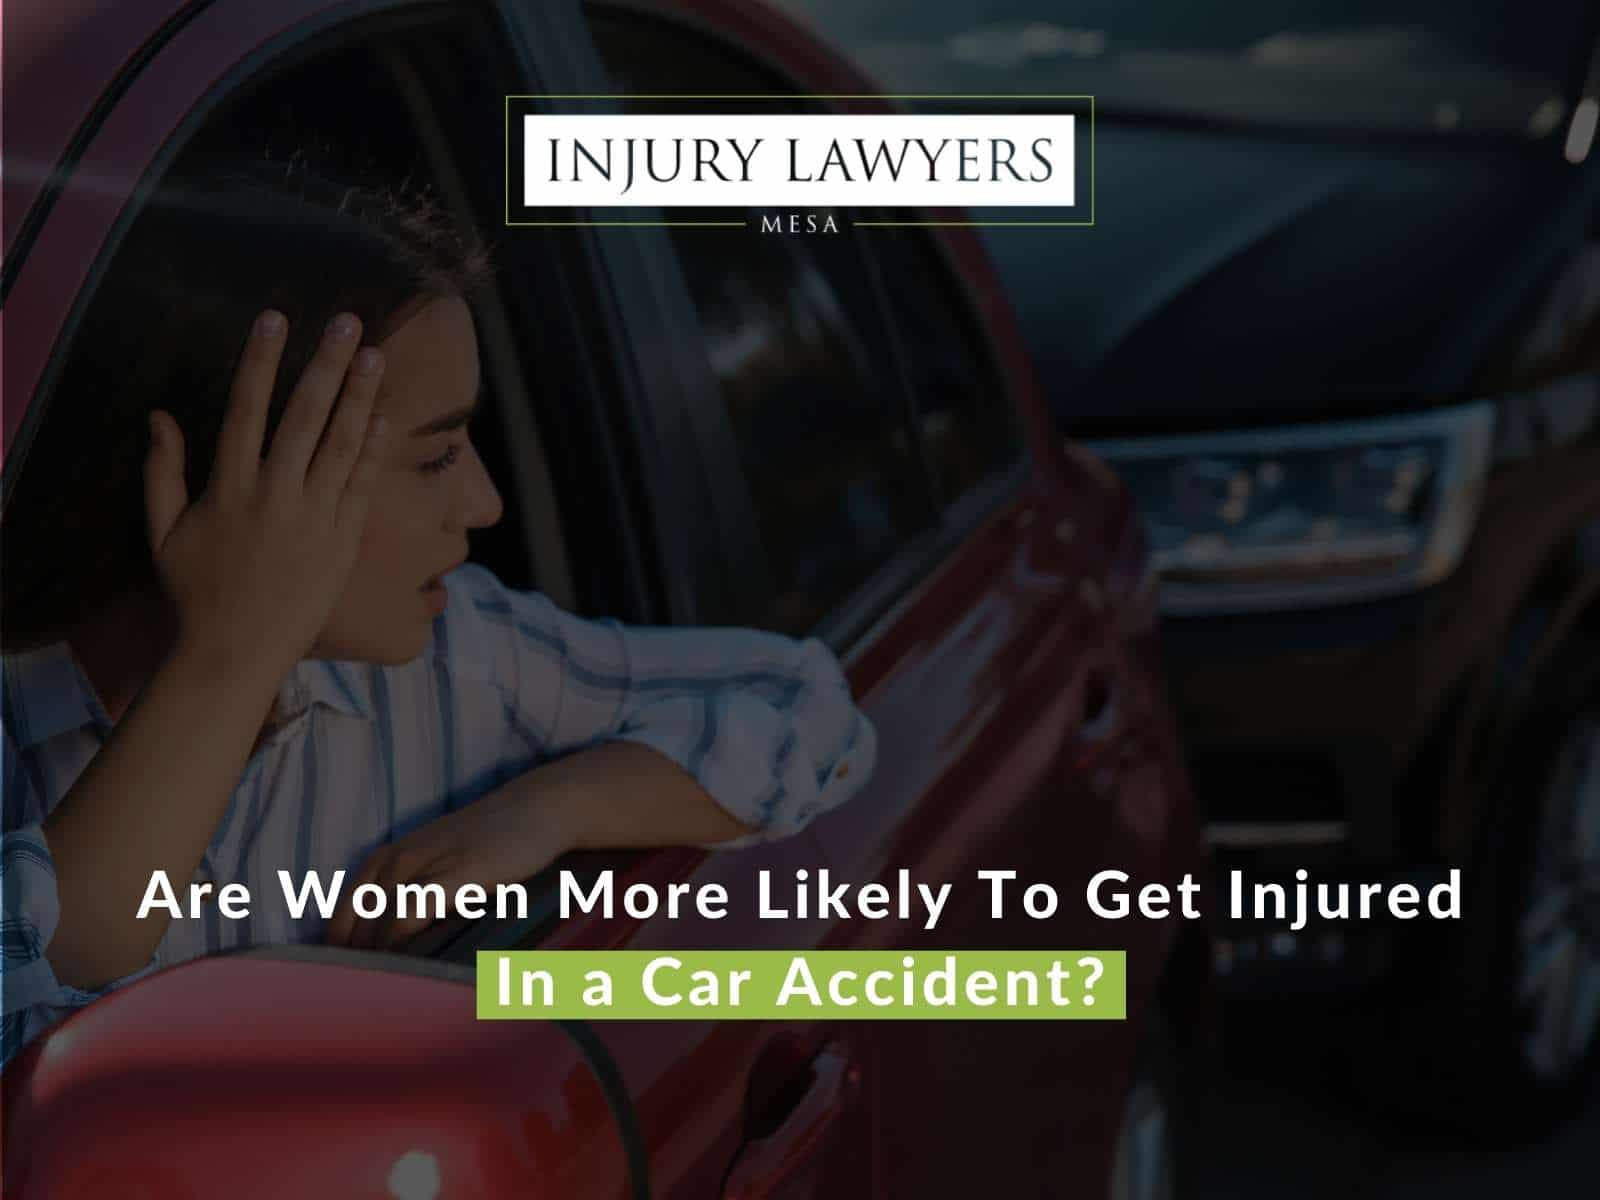 Are Women More Likely To Get Injured In a Car Accident